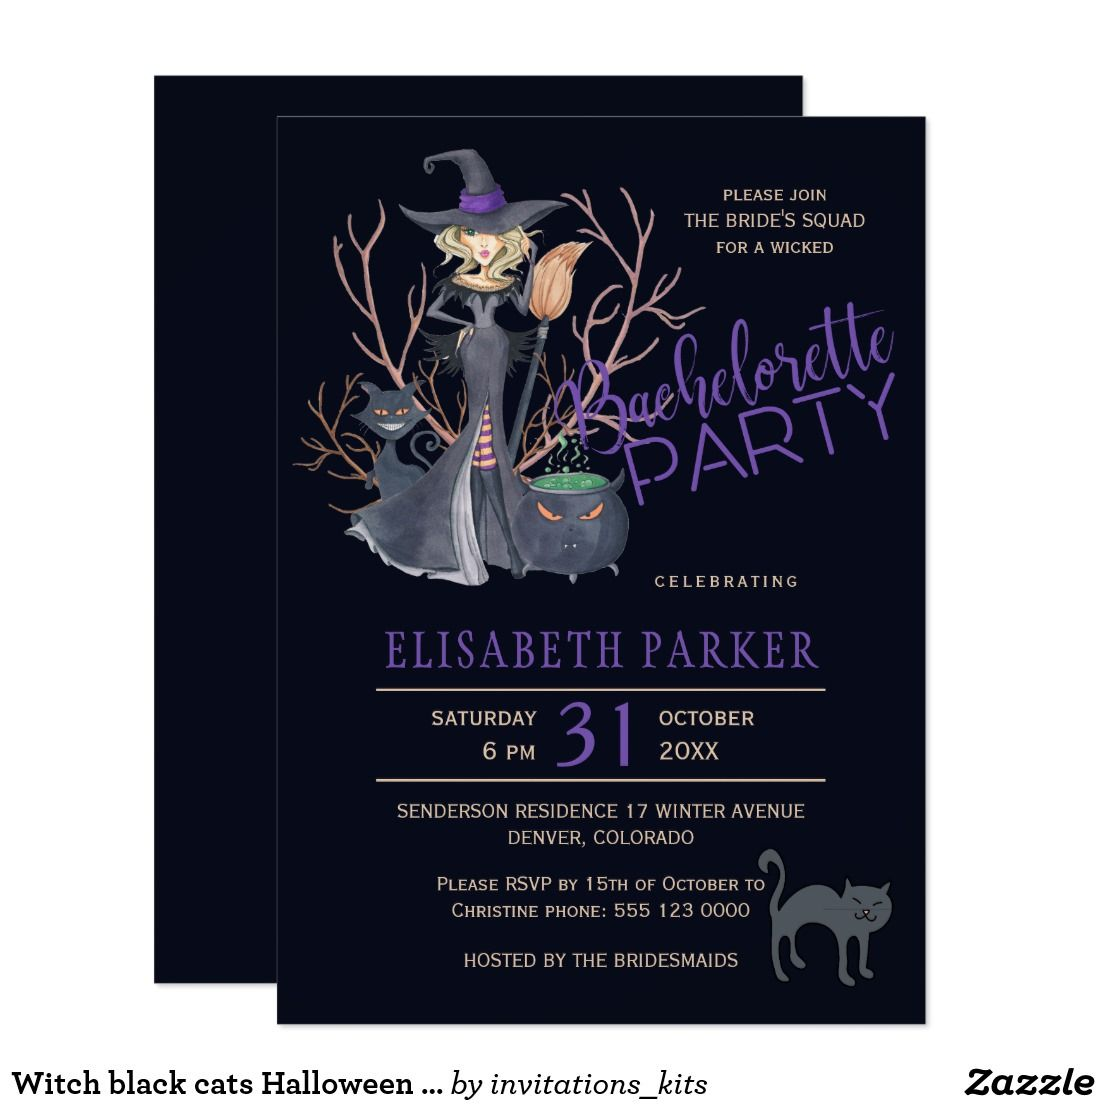 Witch black cats Halloween bridal shower party Card | Halloween ...